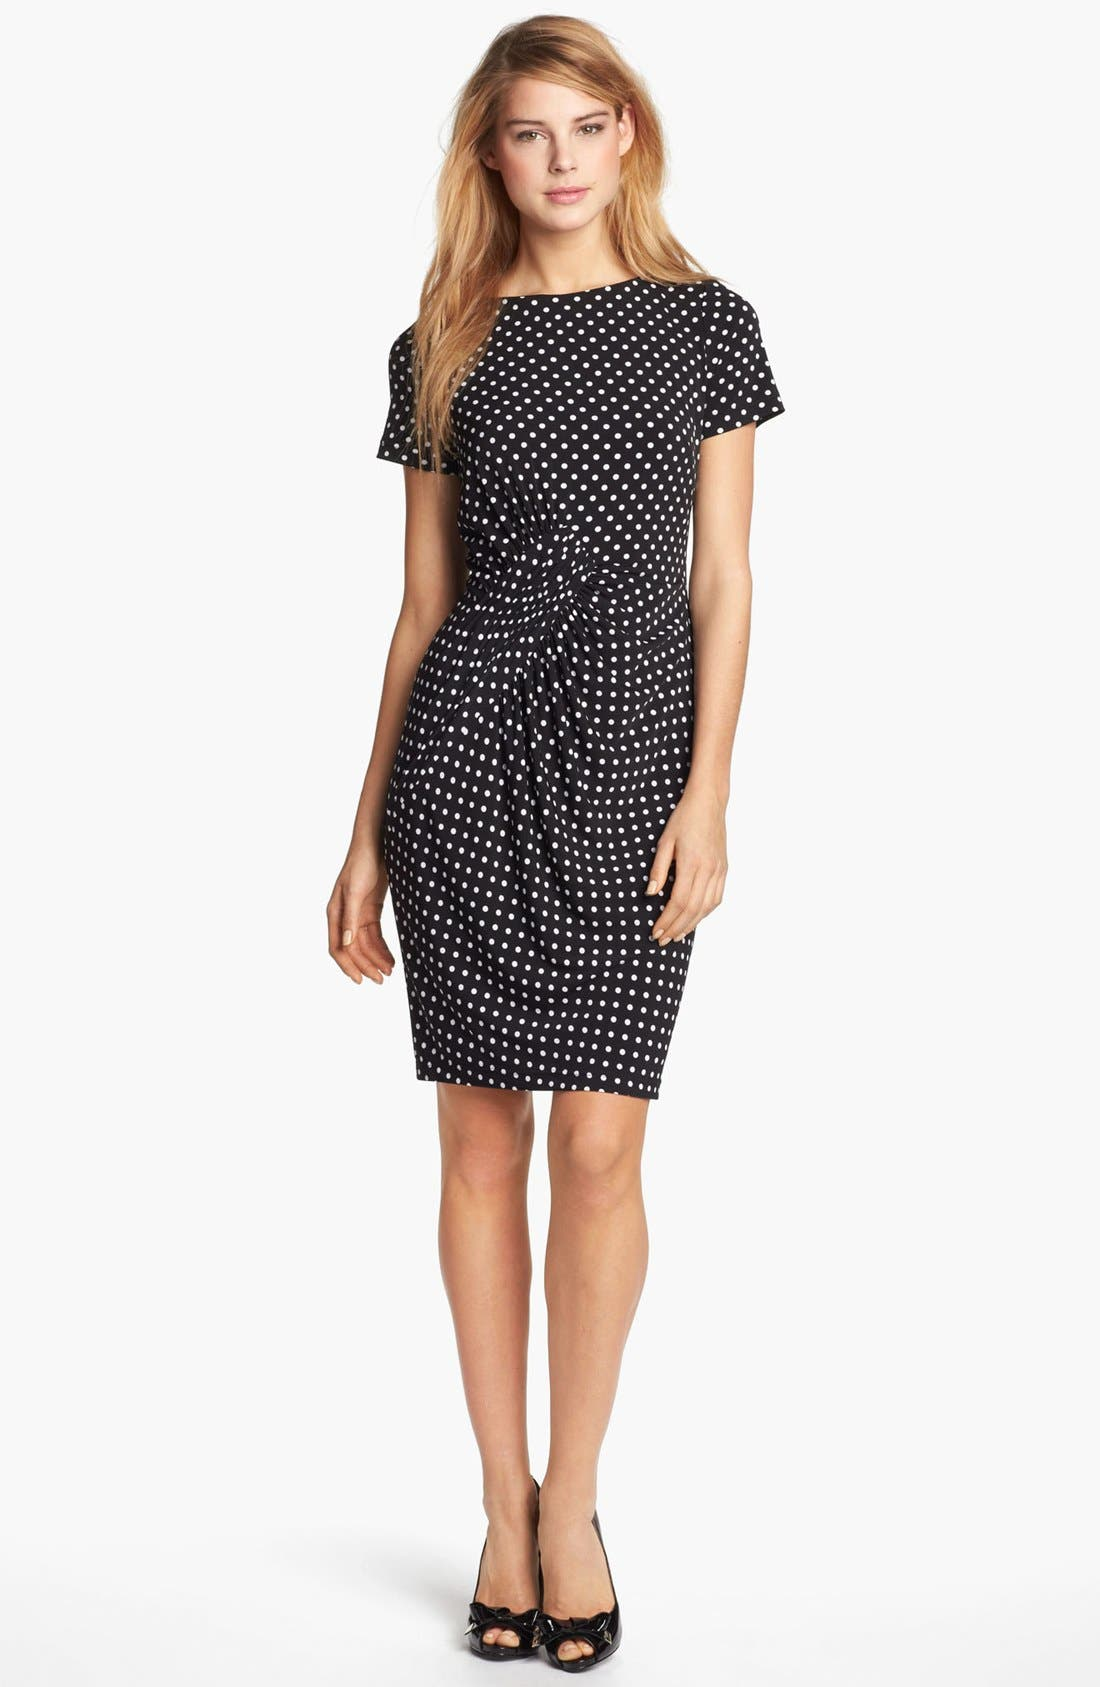 Main Image - Adrianna Papell Polka Dot Ruched Jersey Dress